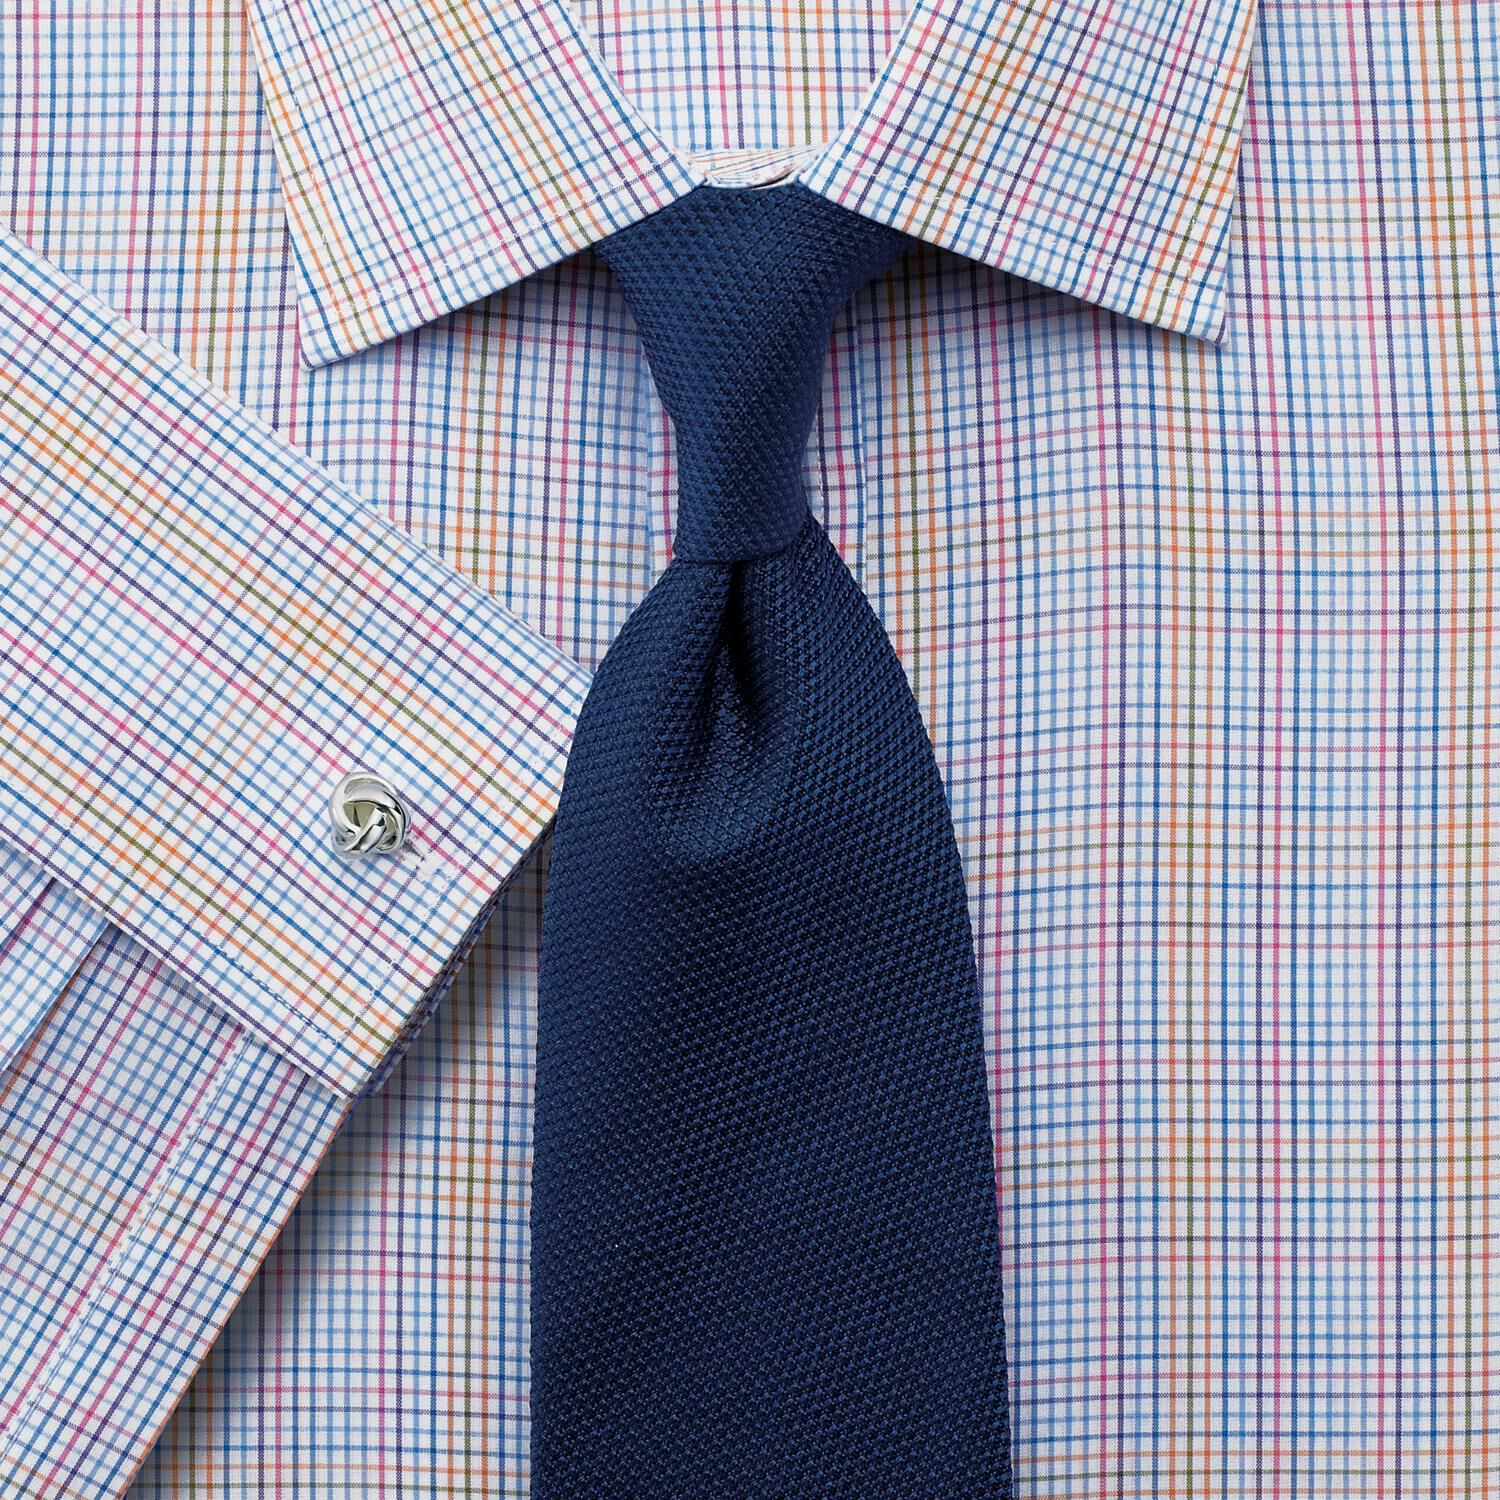 Slim Fit Multi Check Egyptian Cotton Formal Shirt Double Cuff Size 15.5/36 by Charles Tyrwhitt